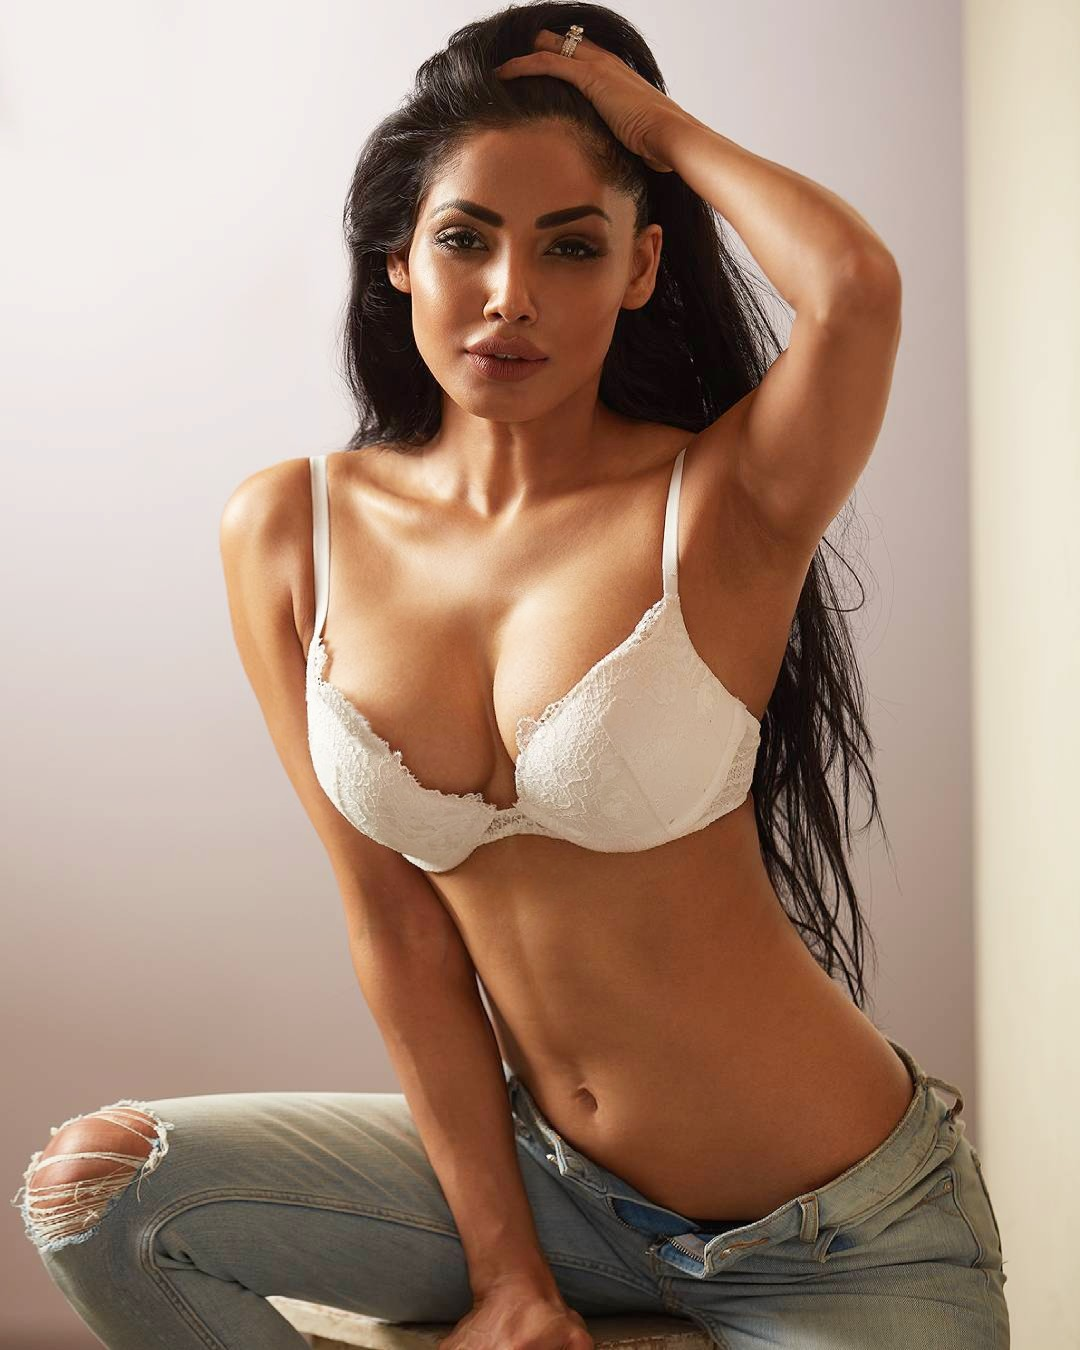 Hot Indian actress pics – Celebrityphotocuts 5